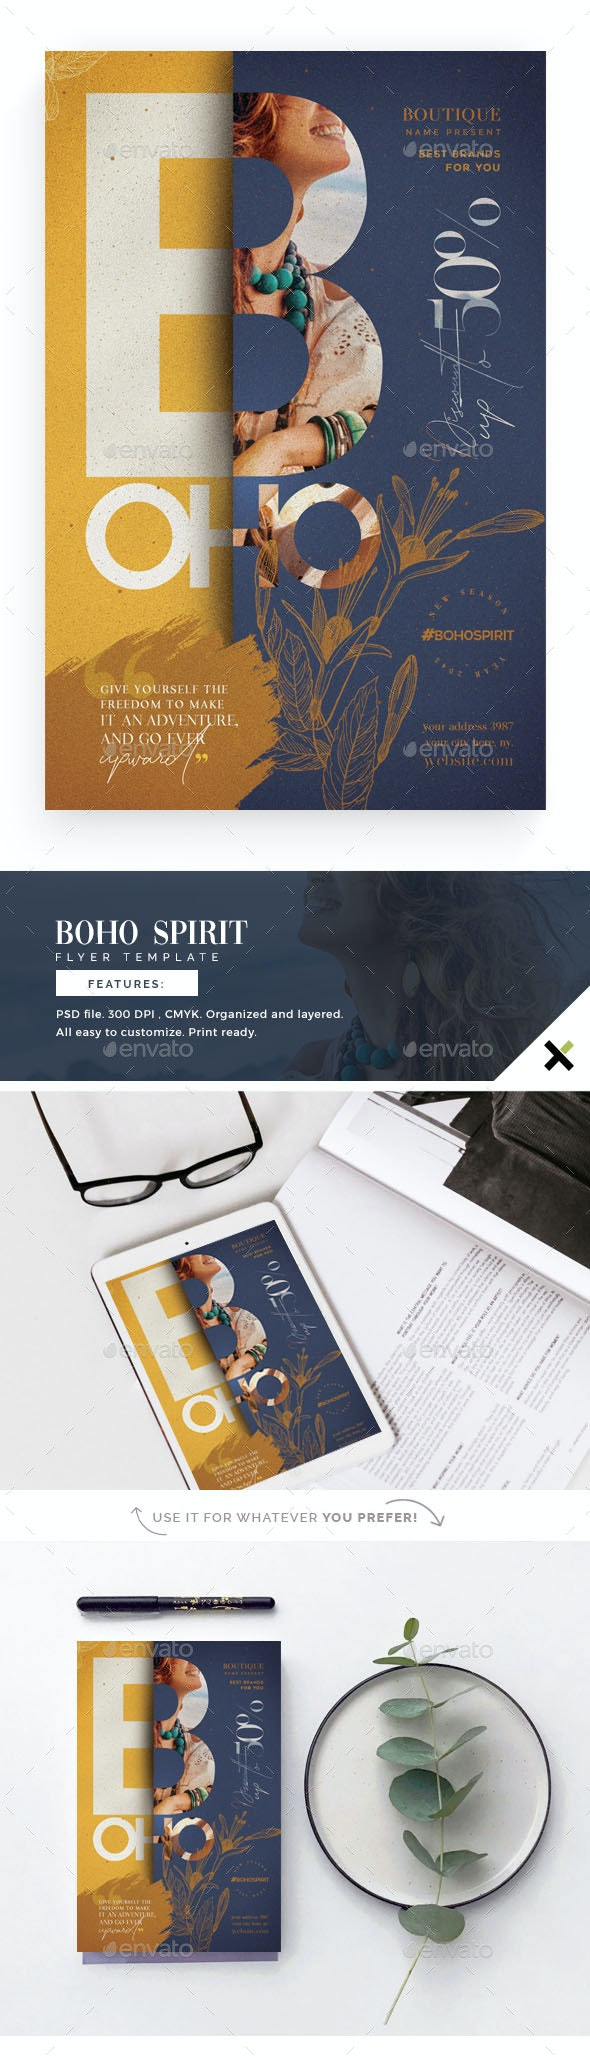 Boho Spirit Flyer Template - Flyers Print Templates